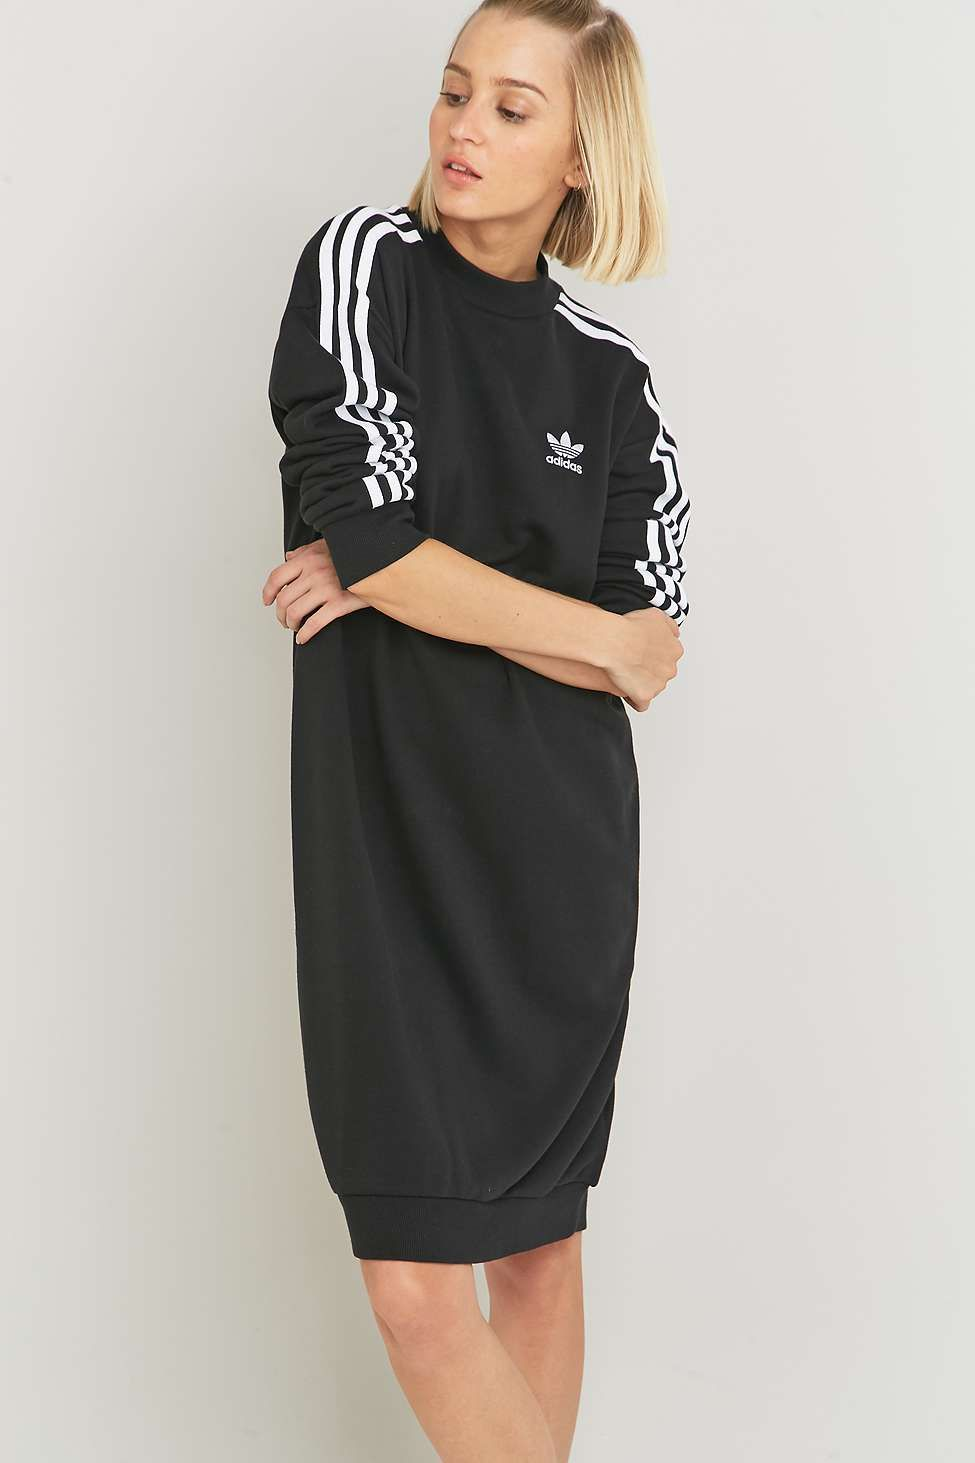 69a40388e0fd adidas Originals 3-Stripe Black Midi Dress in 2019 | WOMEN'S ...